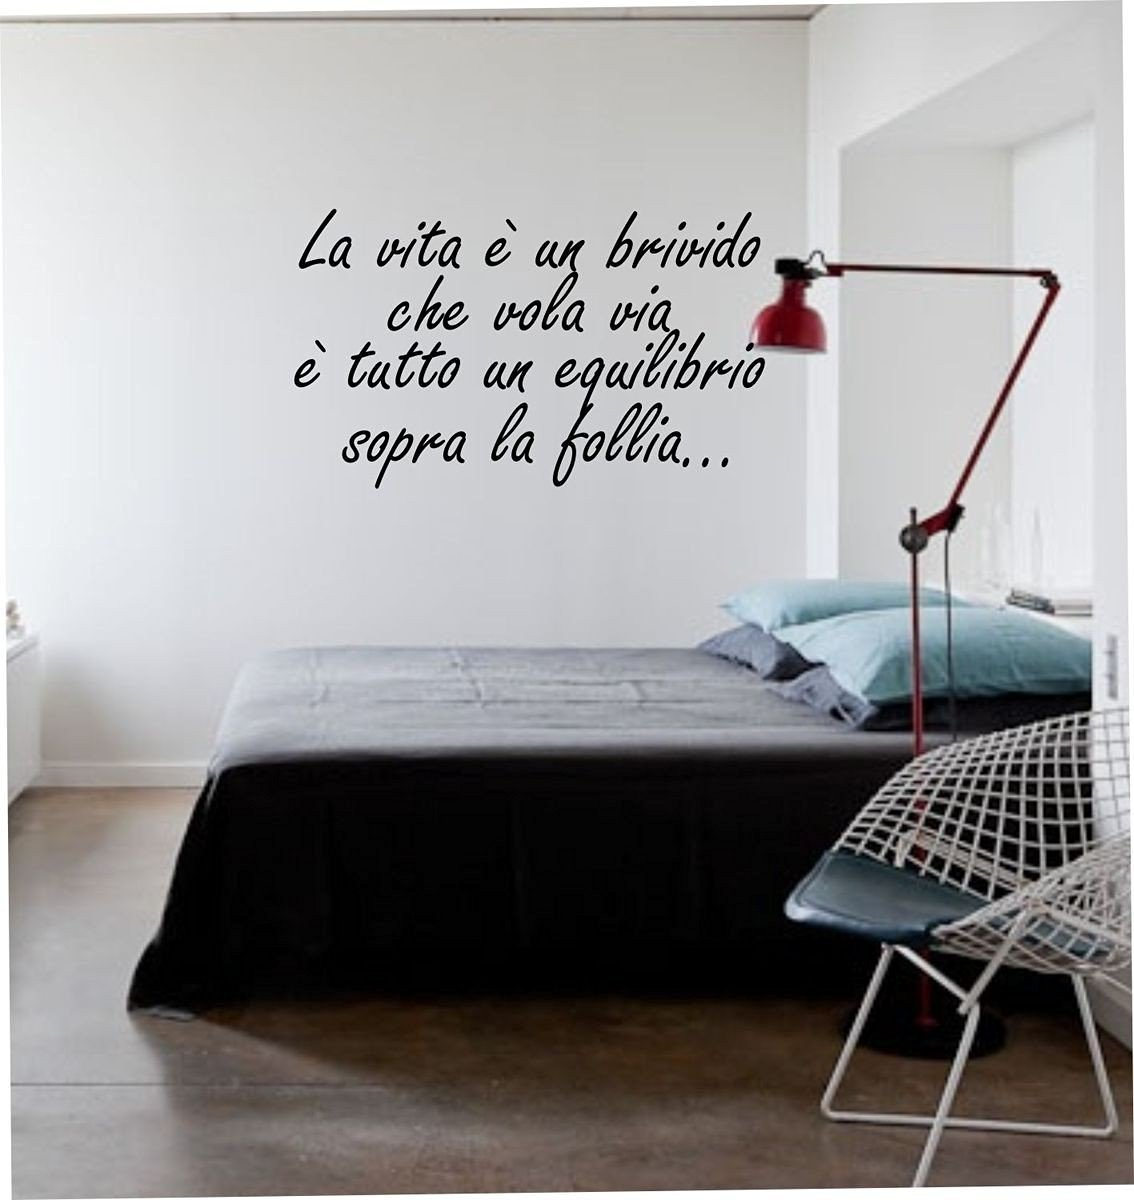 Adesivo4You® wall stickers Adesivo murale fraseLa vita è un brivido che vola via -decorazione interni (MEDIUM 100 CM. X 40 CM.) Officina dell' idea